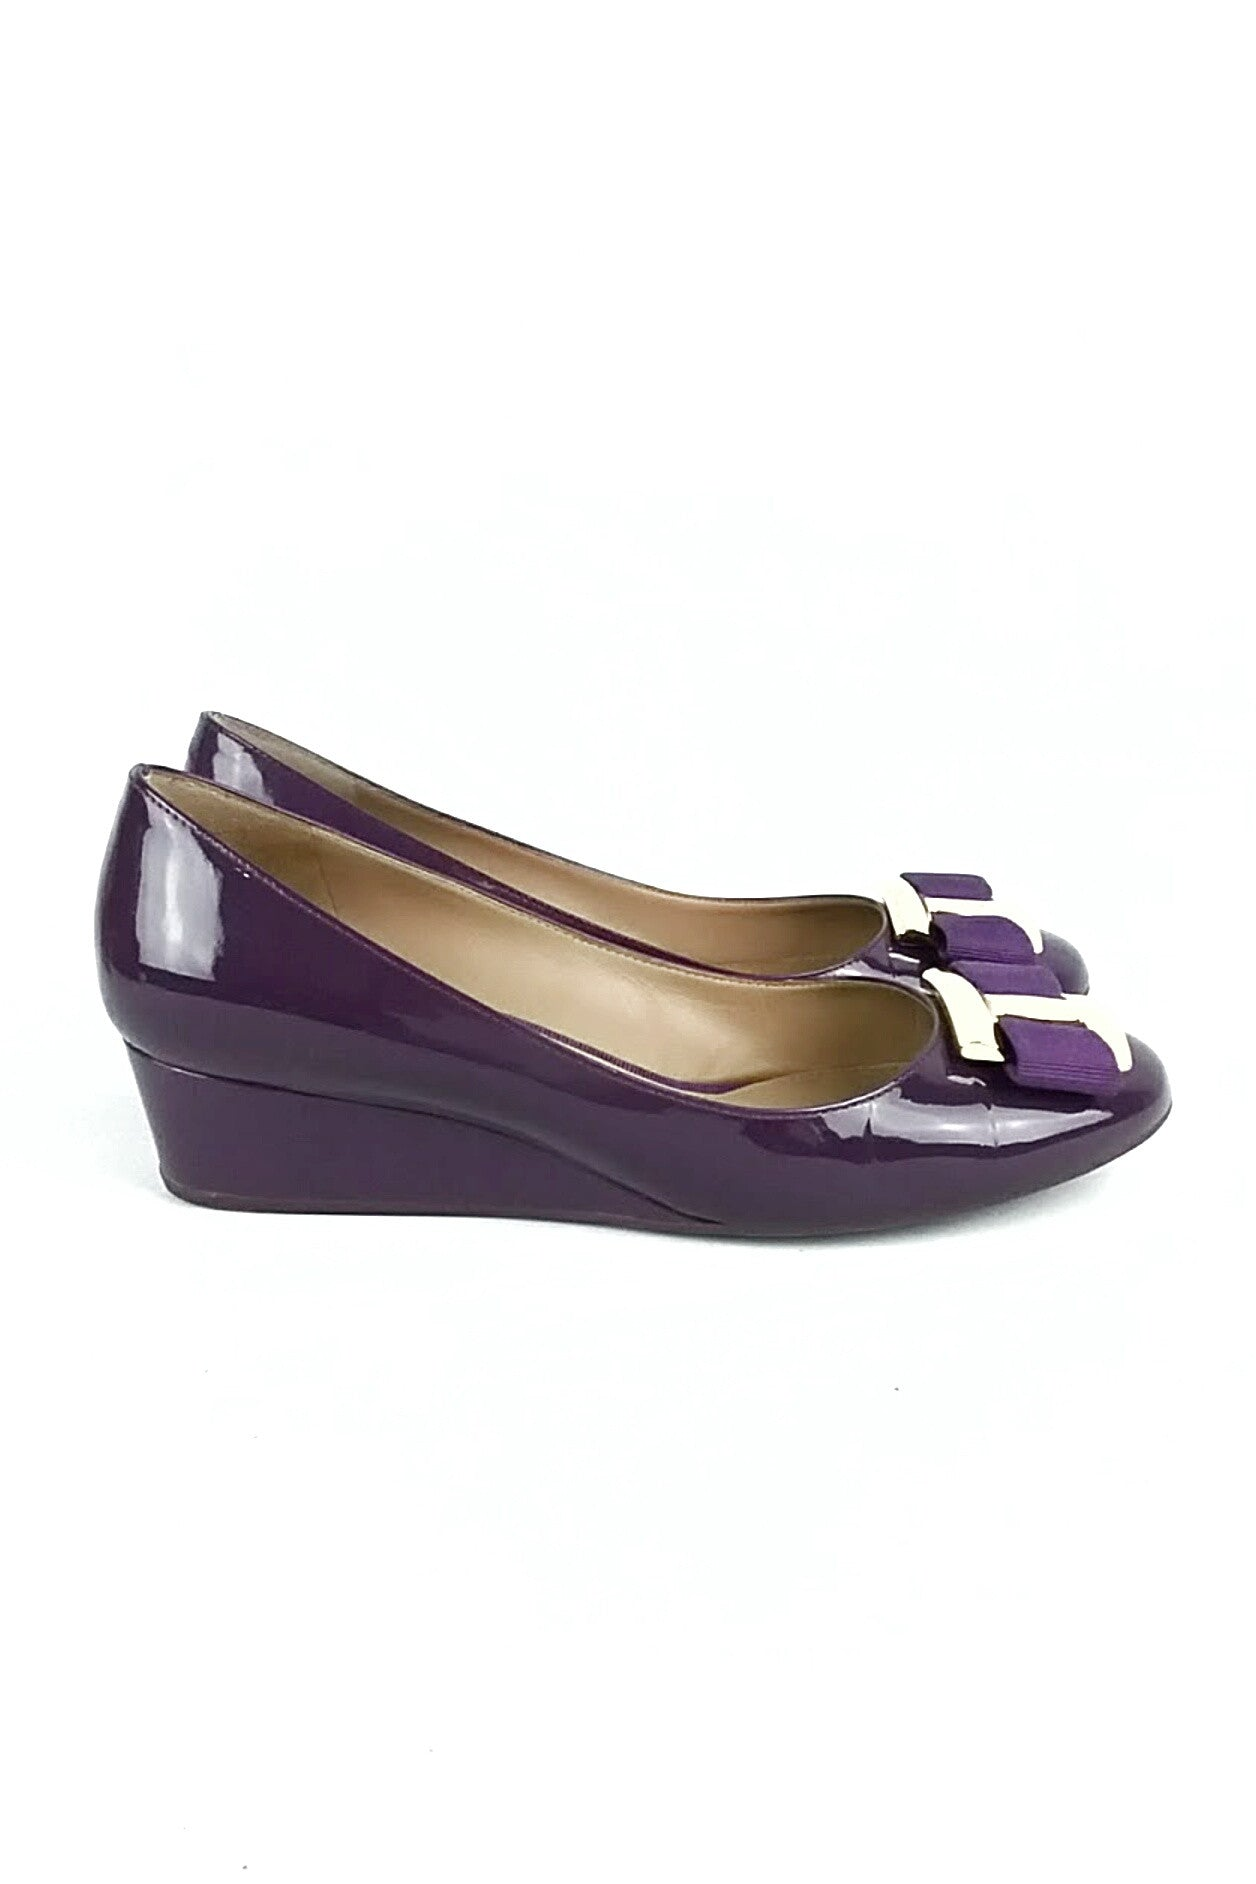 Purple Patent Leather Wedge Heels